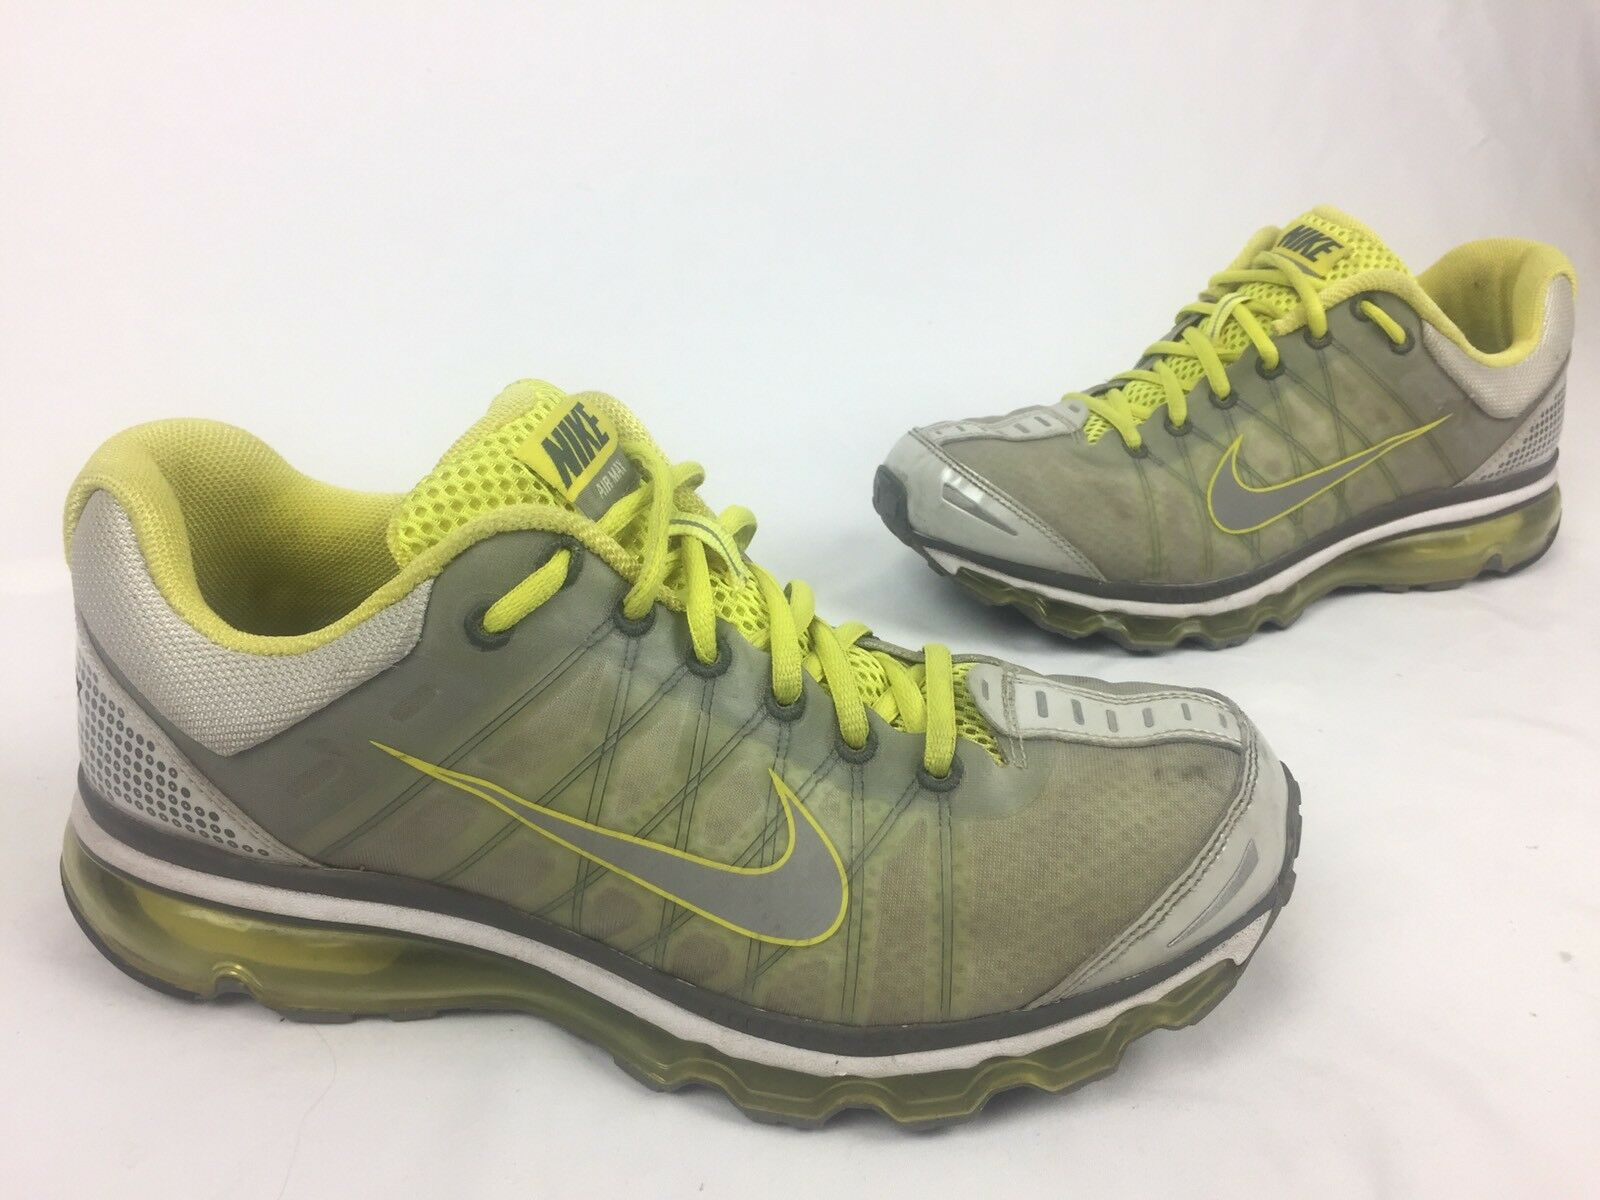 Nike Air Max+ 2009 Silver / Neon Running Shoes Sneakers Size 10